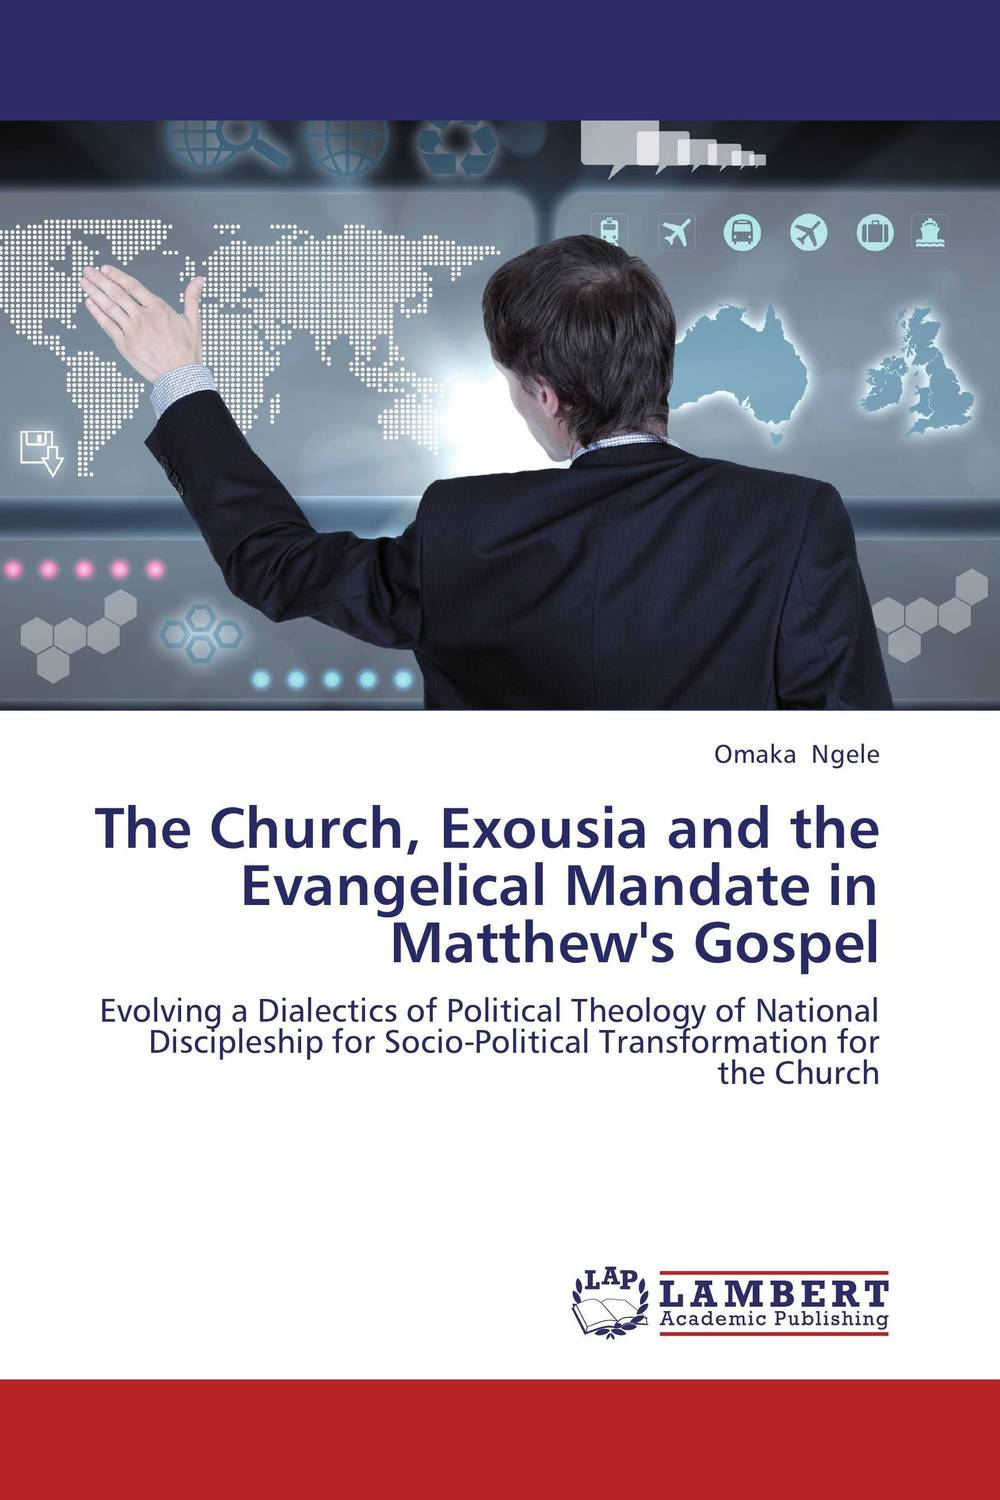 The Church, Exousia and the Evangelical Mandate in Matthew's Gospel